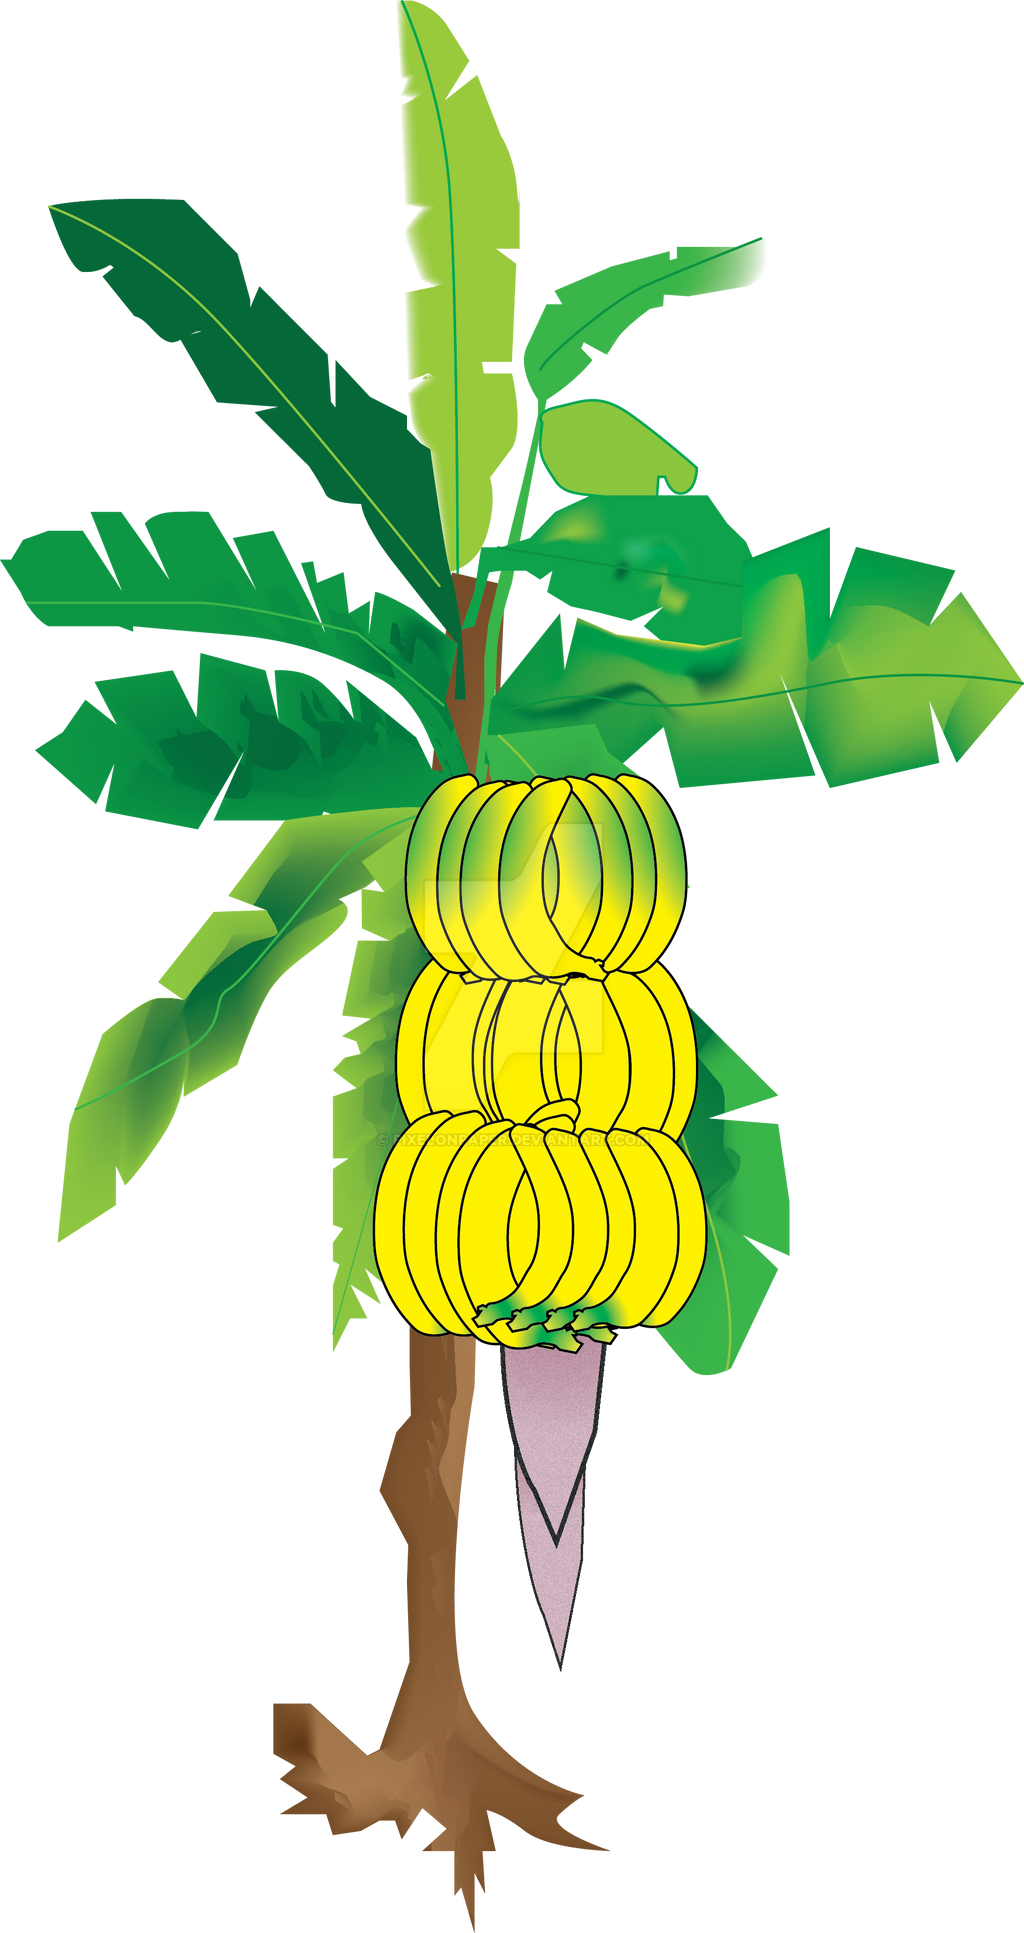 banana tree drawing png - photo #9